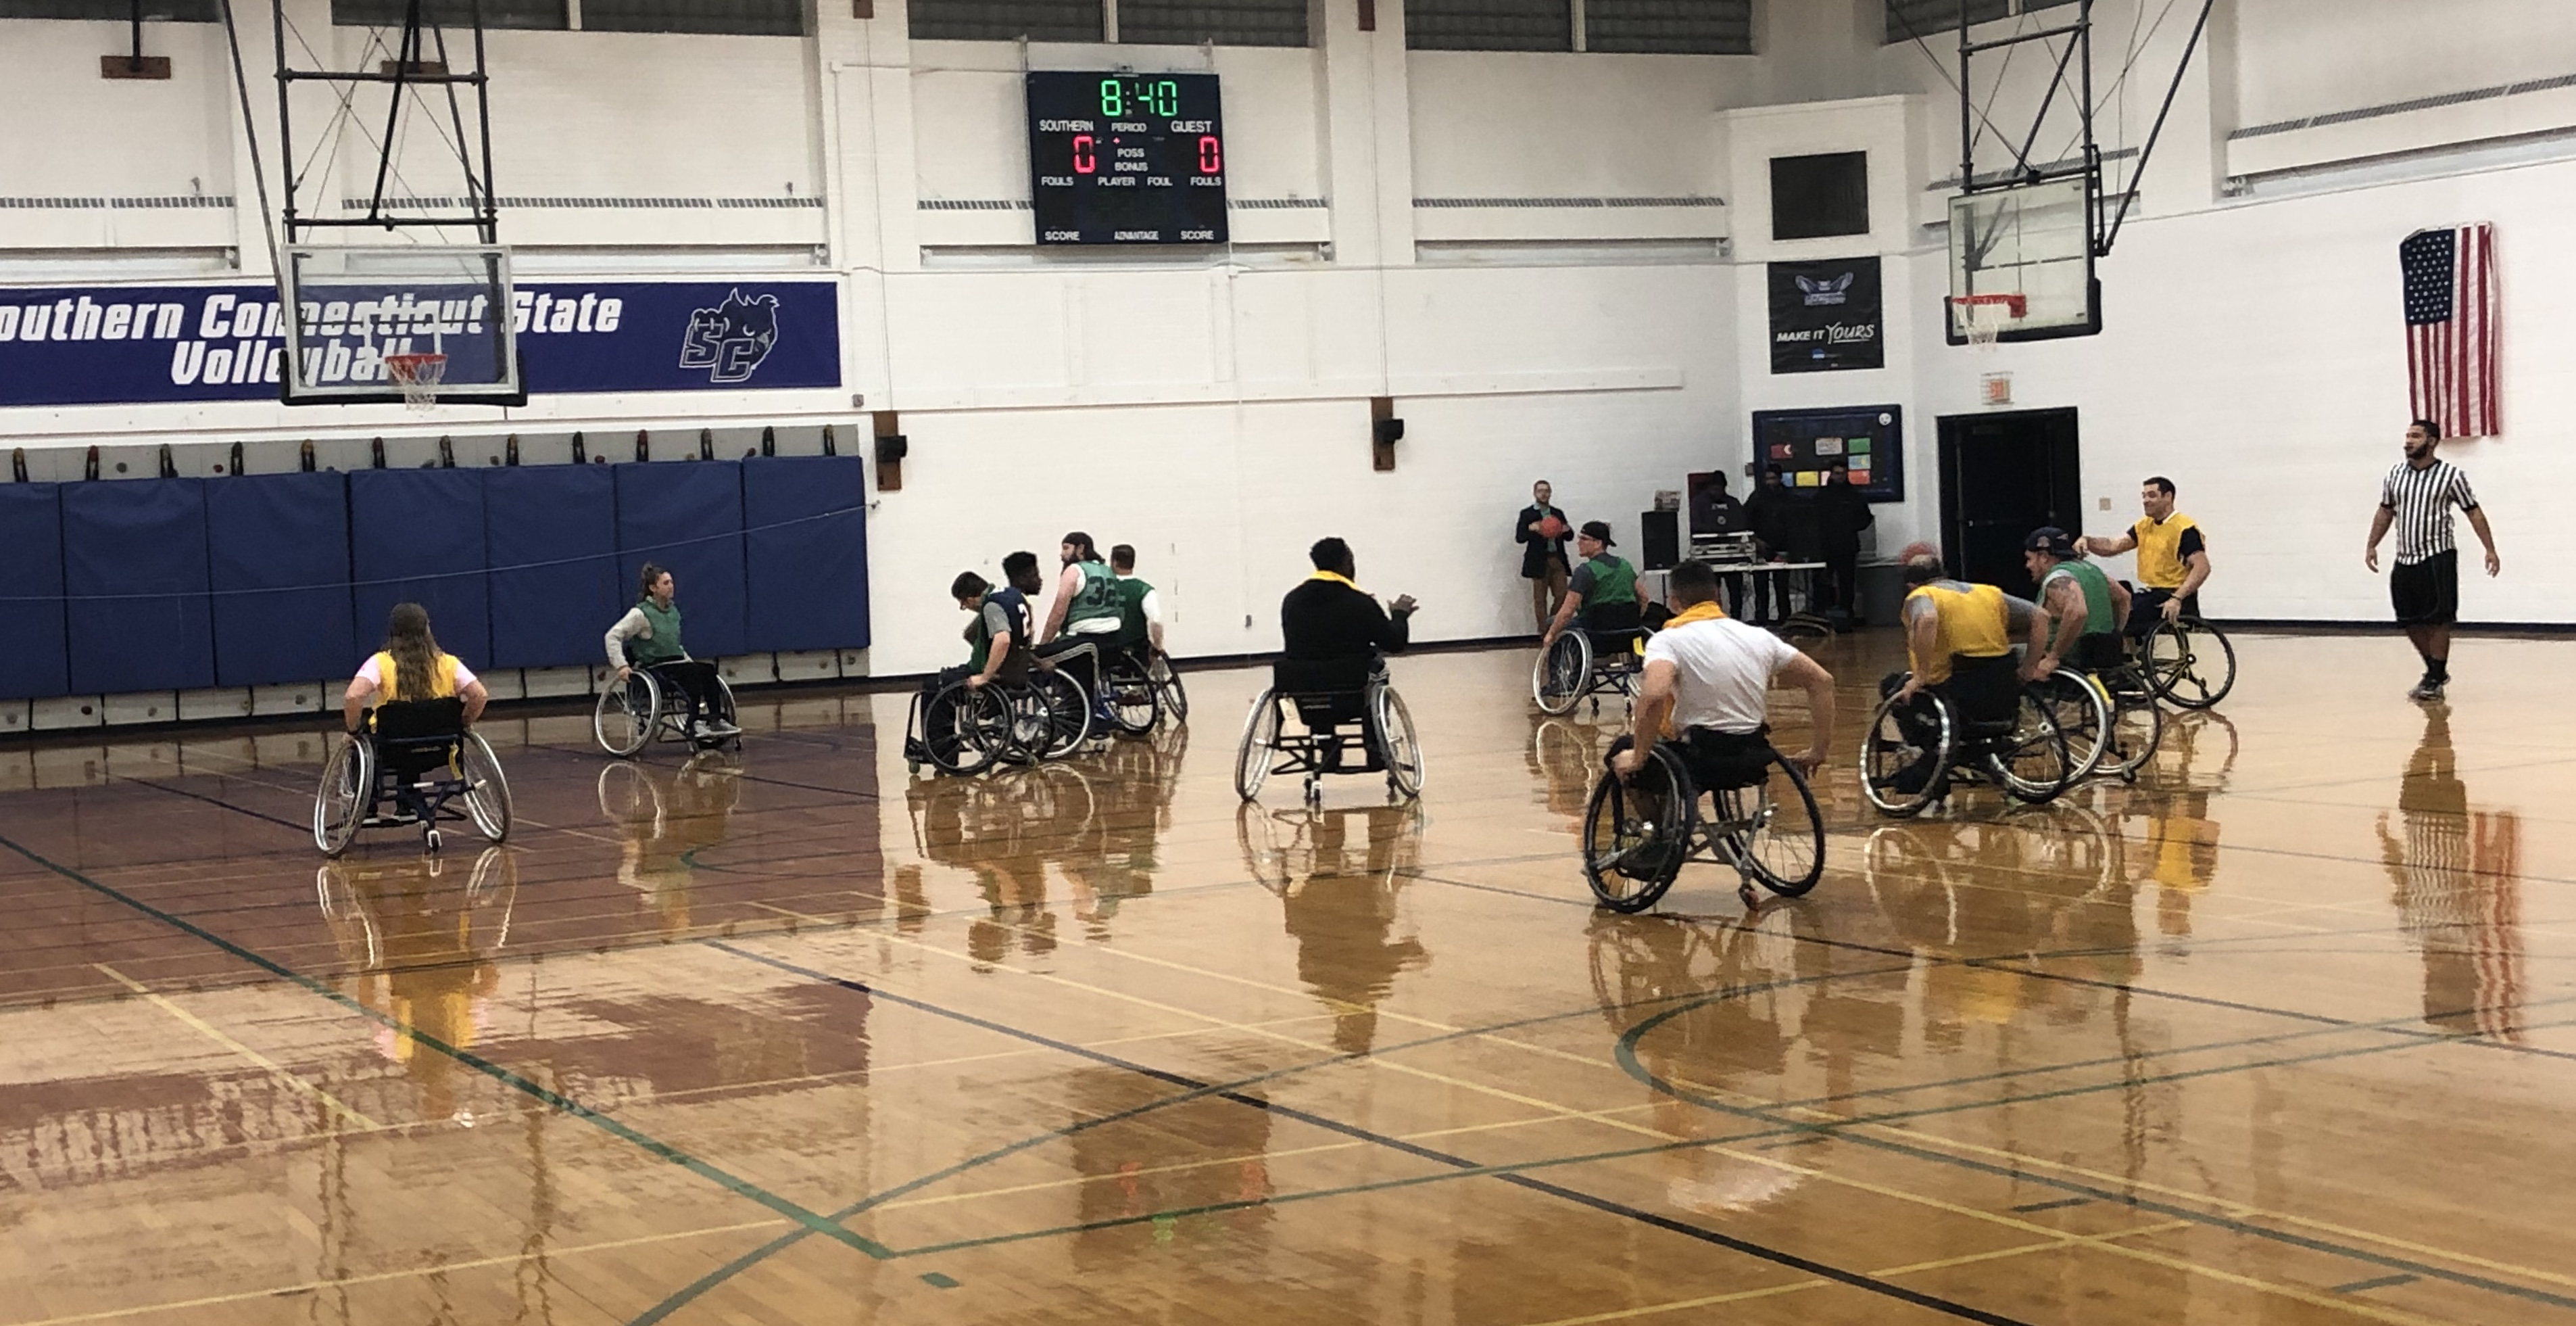 A game of wheelchair basketball